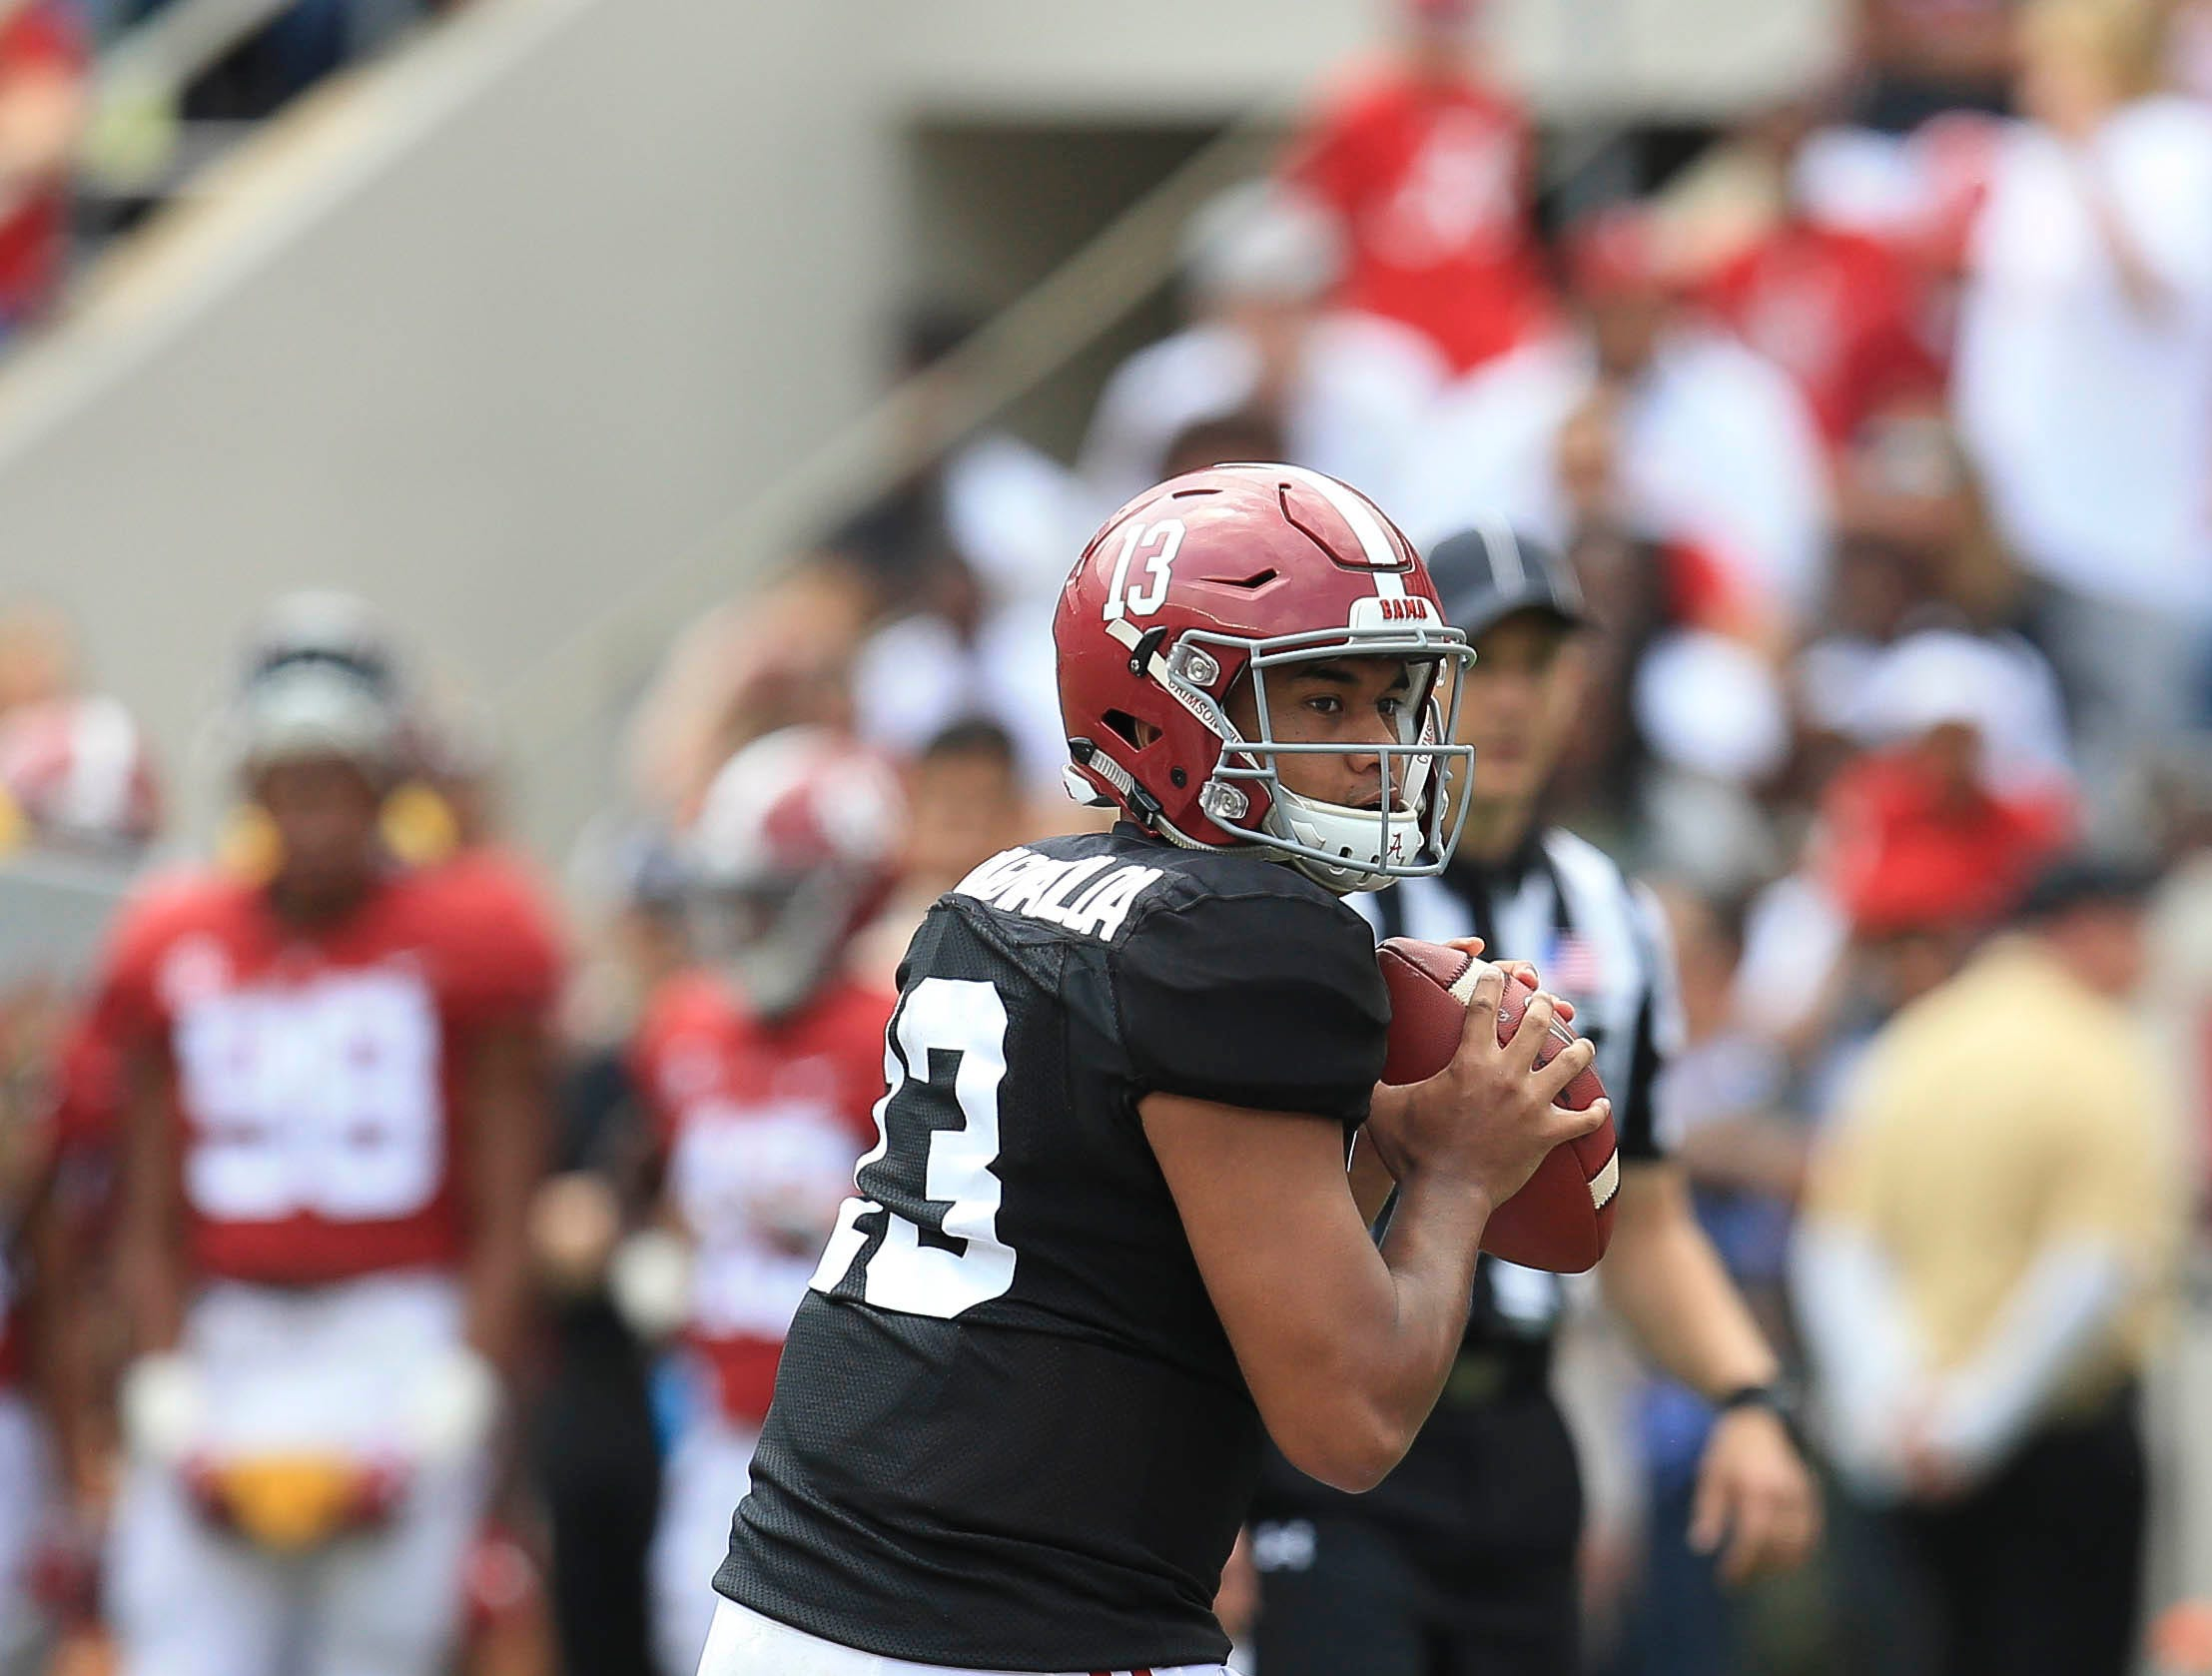 Apr 13, 2019; Tuscaloosa, AL, USA; Alabama Crimson Tide quarterback Tua Tagovailoa (13) during the spring game at Bryant-Denny Stadium. Mandatory Credit: Marvin Gentry-USA TODAY Sports